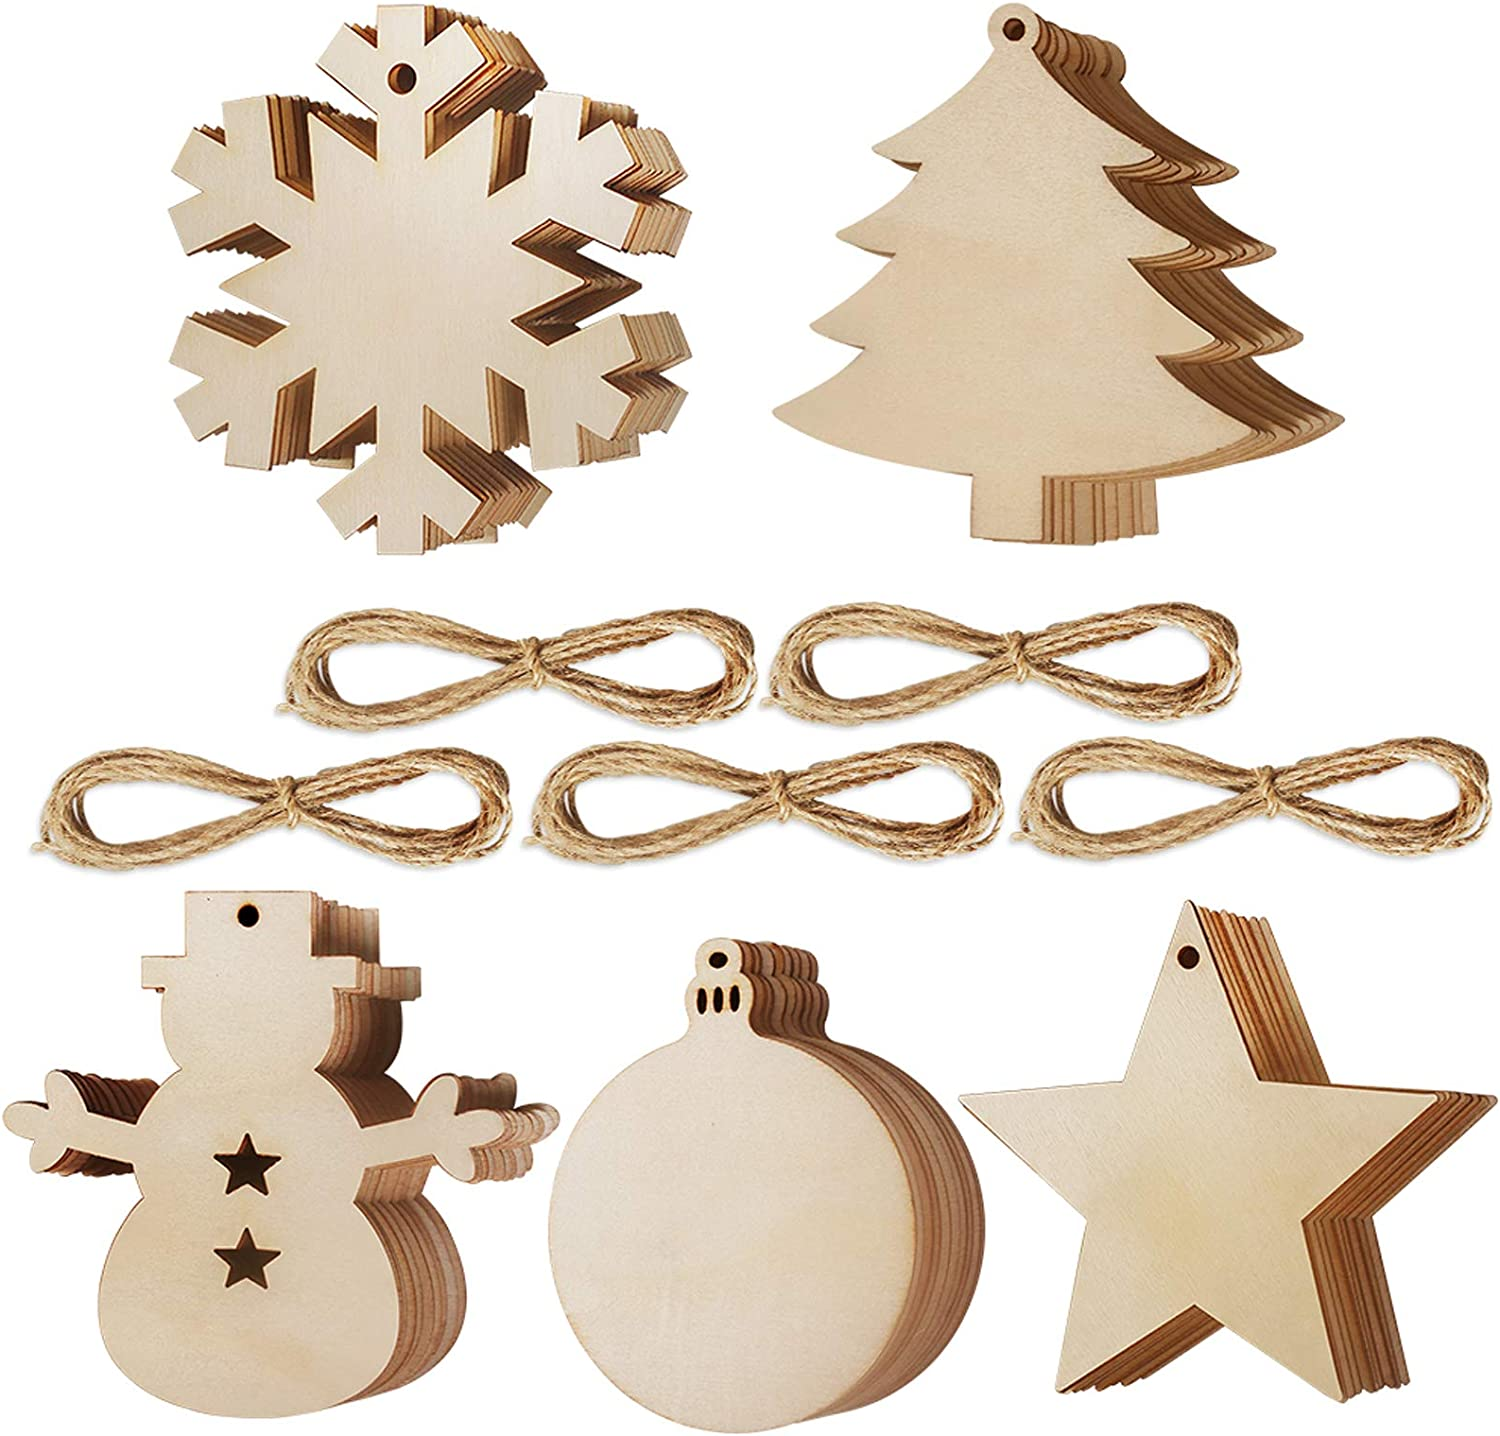 20 Pcs Wooden Christmas Ornaments Unfinished Wood Hanging Ornament Slices  with Hole for Christmas Party Decorations, DIY Crafts